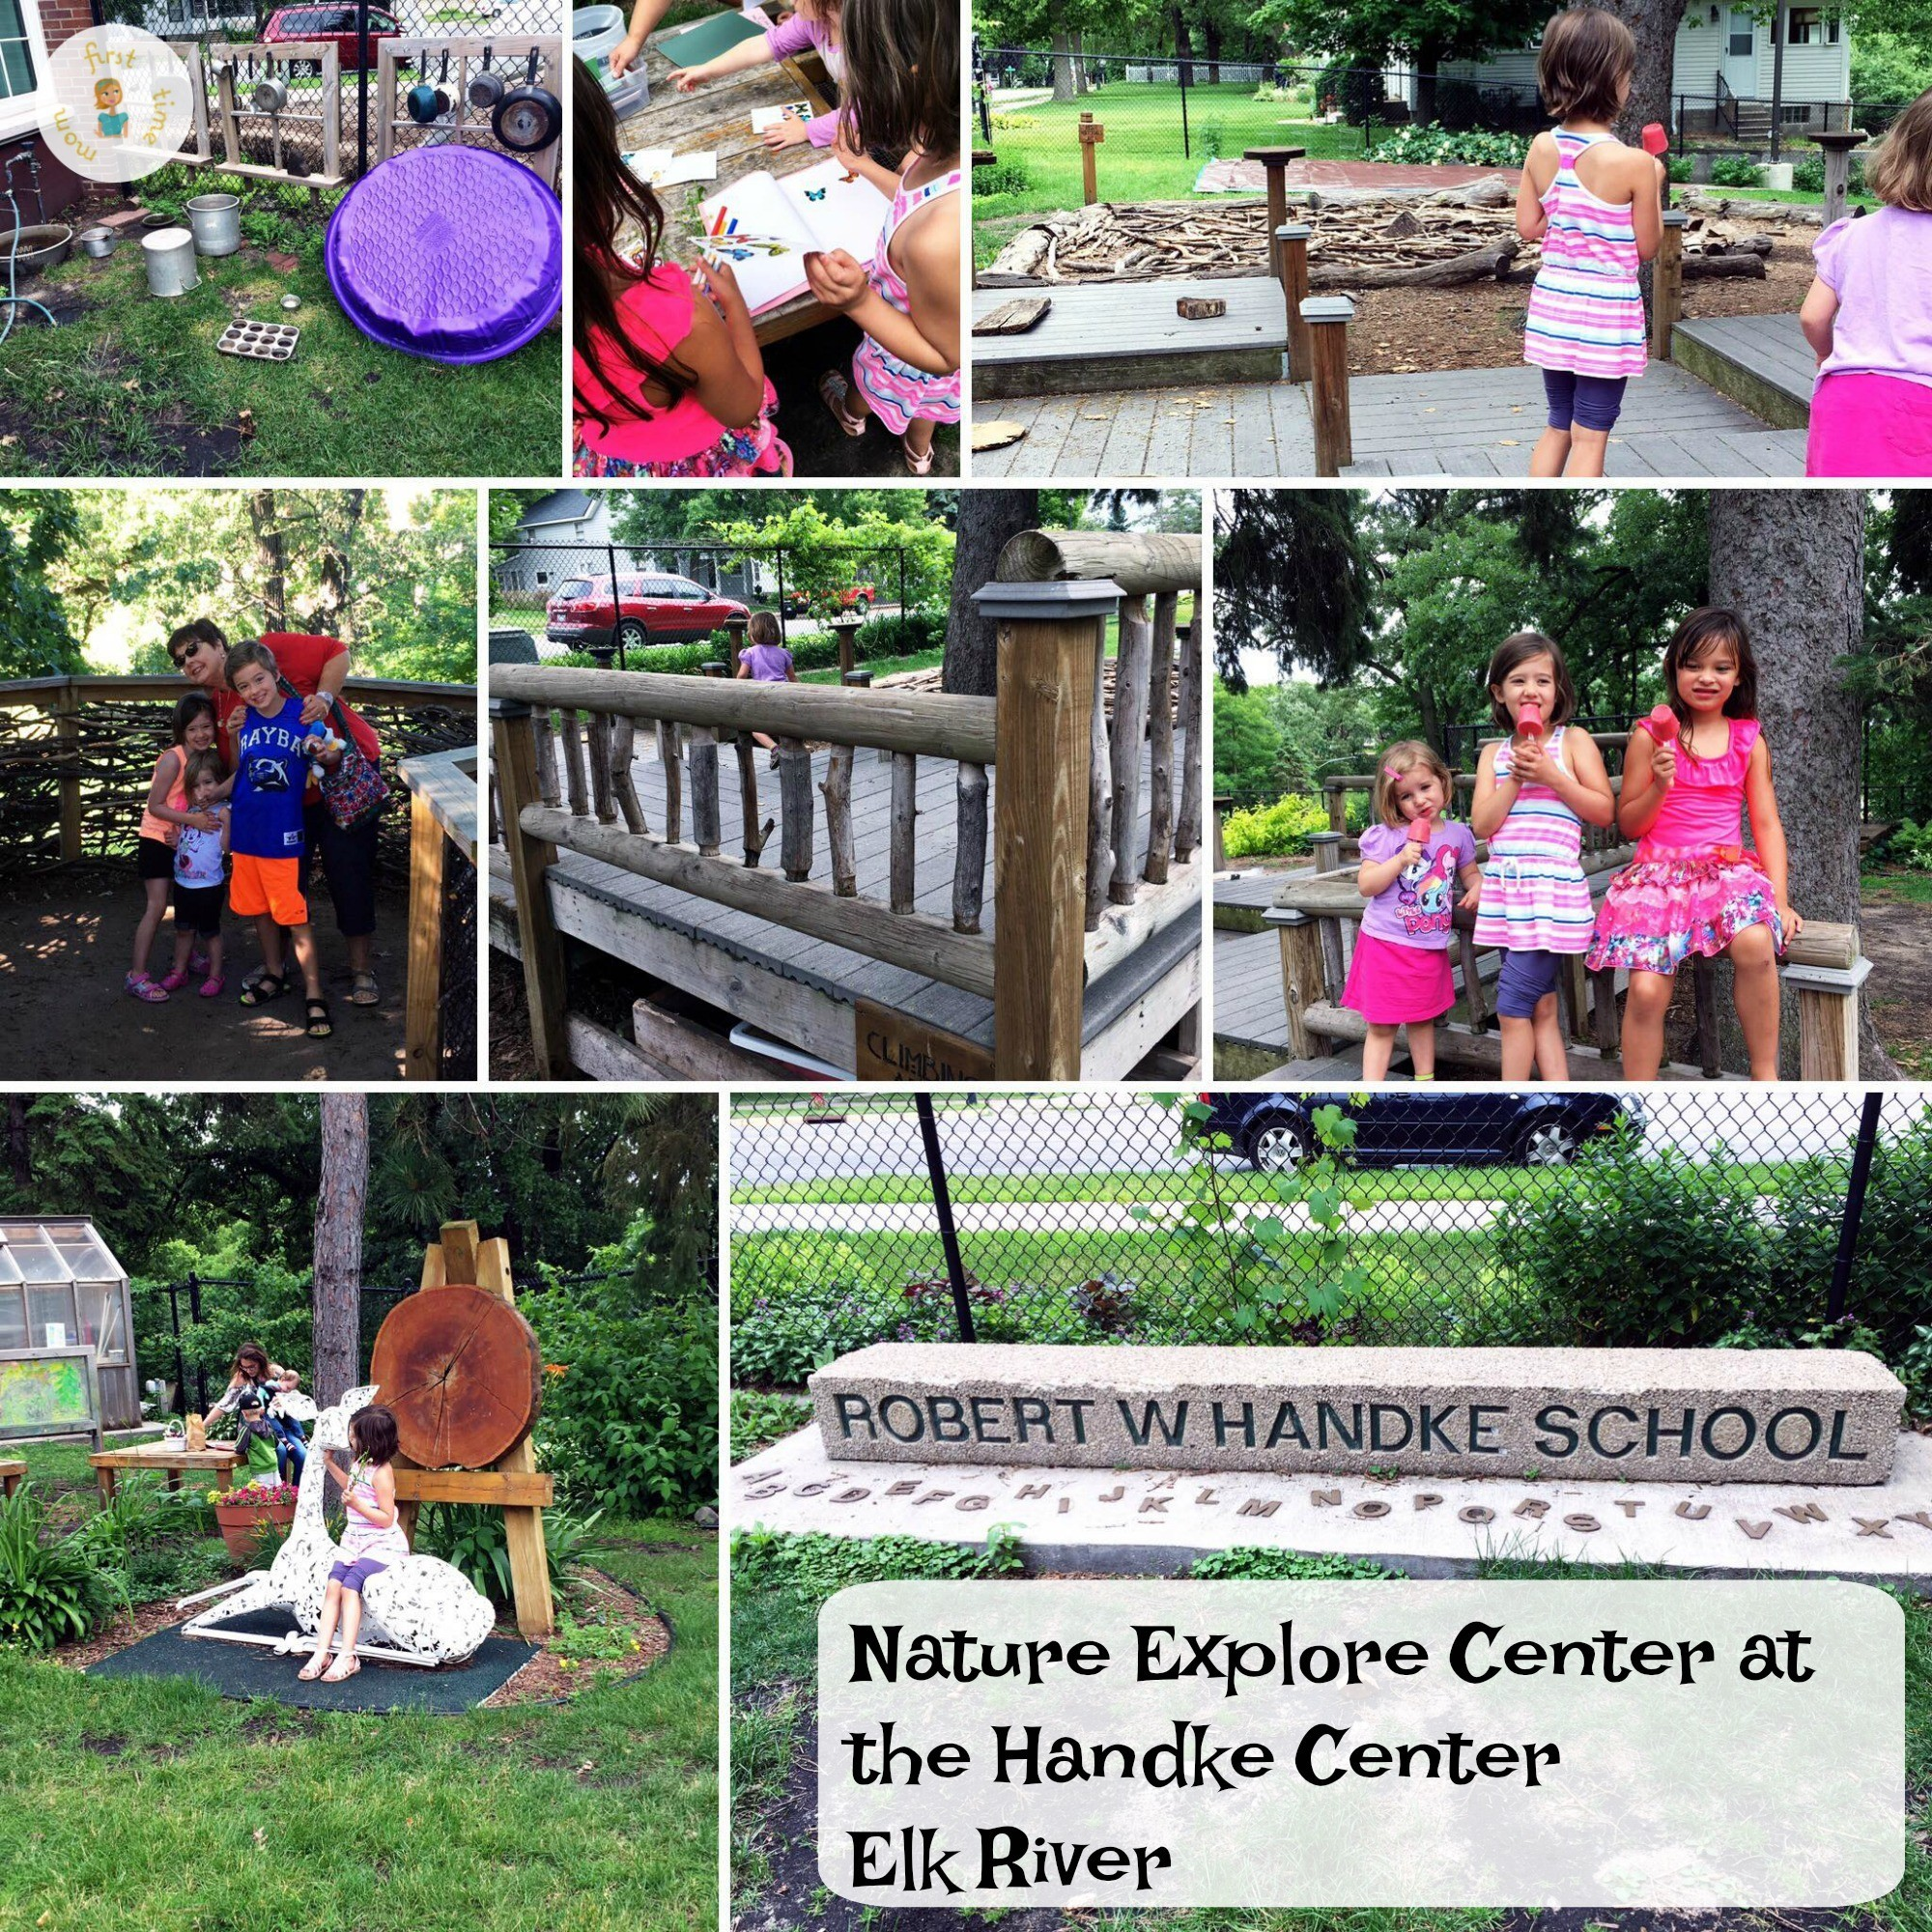 Nature Explore Center at the Handke Center